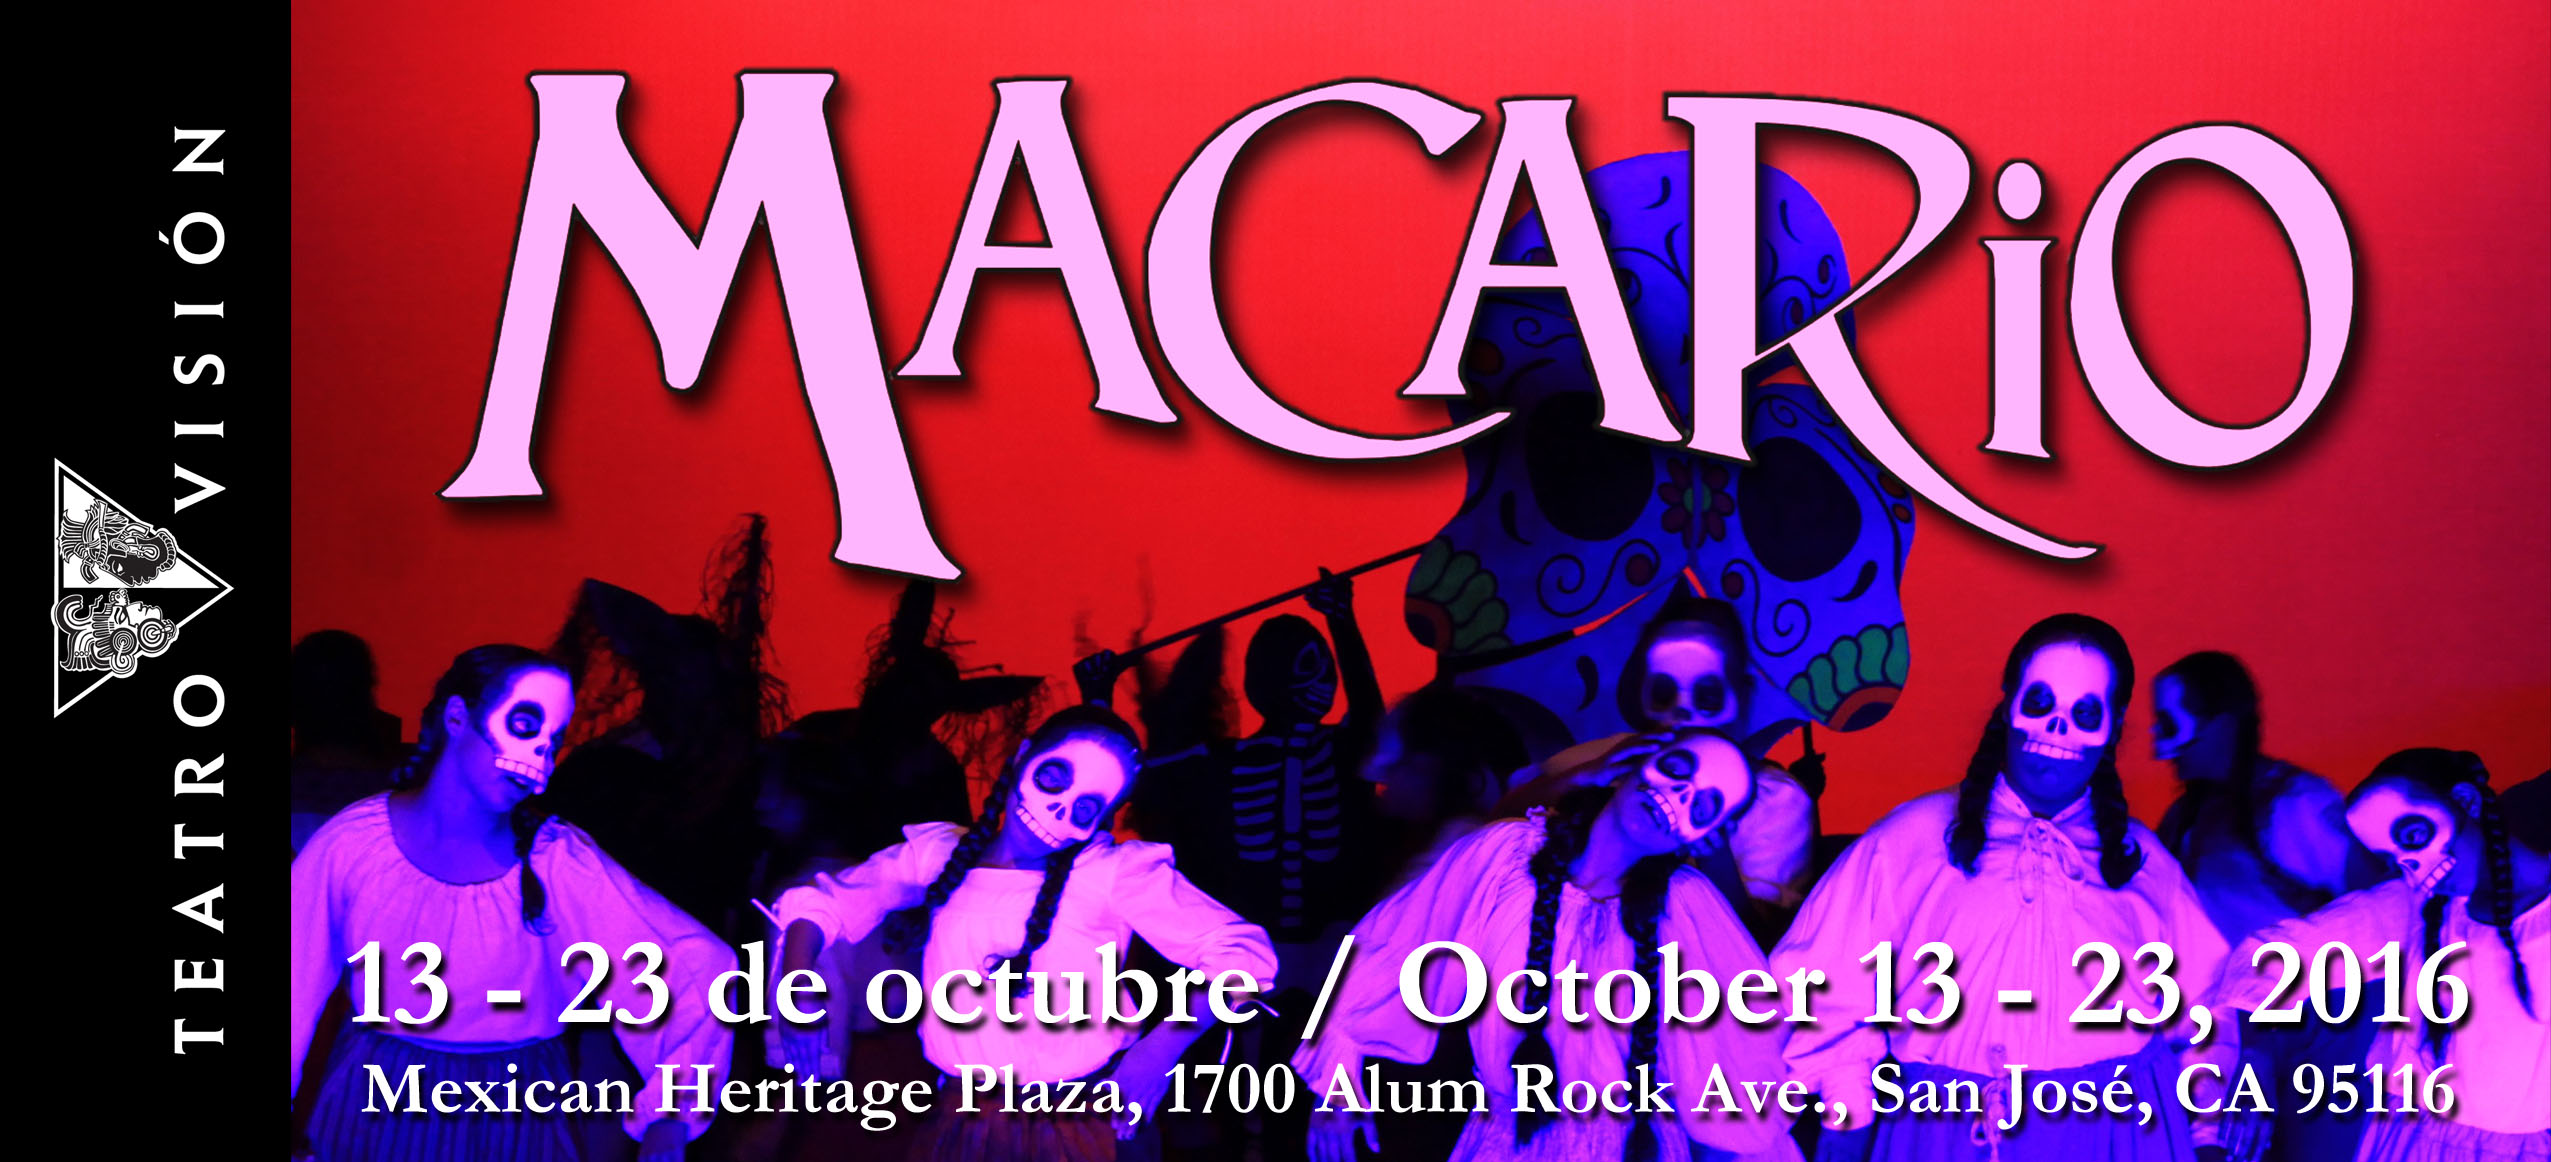 Macario_website_banner_2.jpg